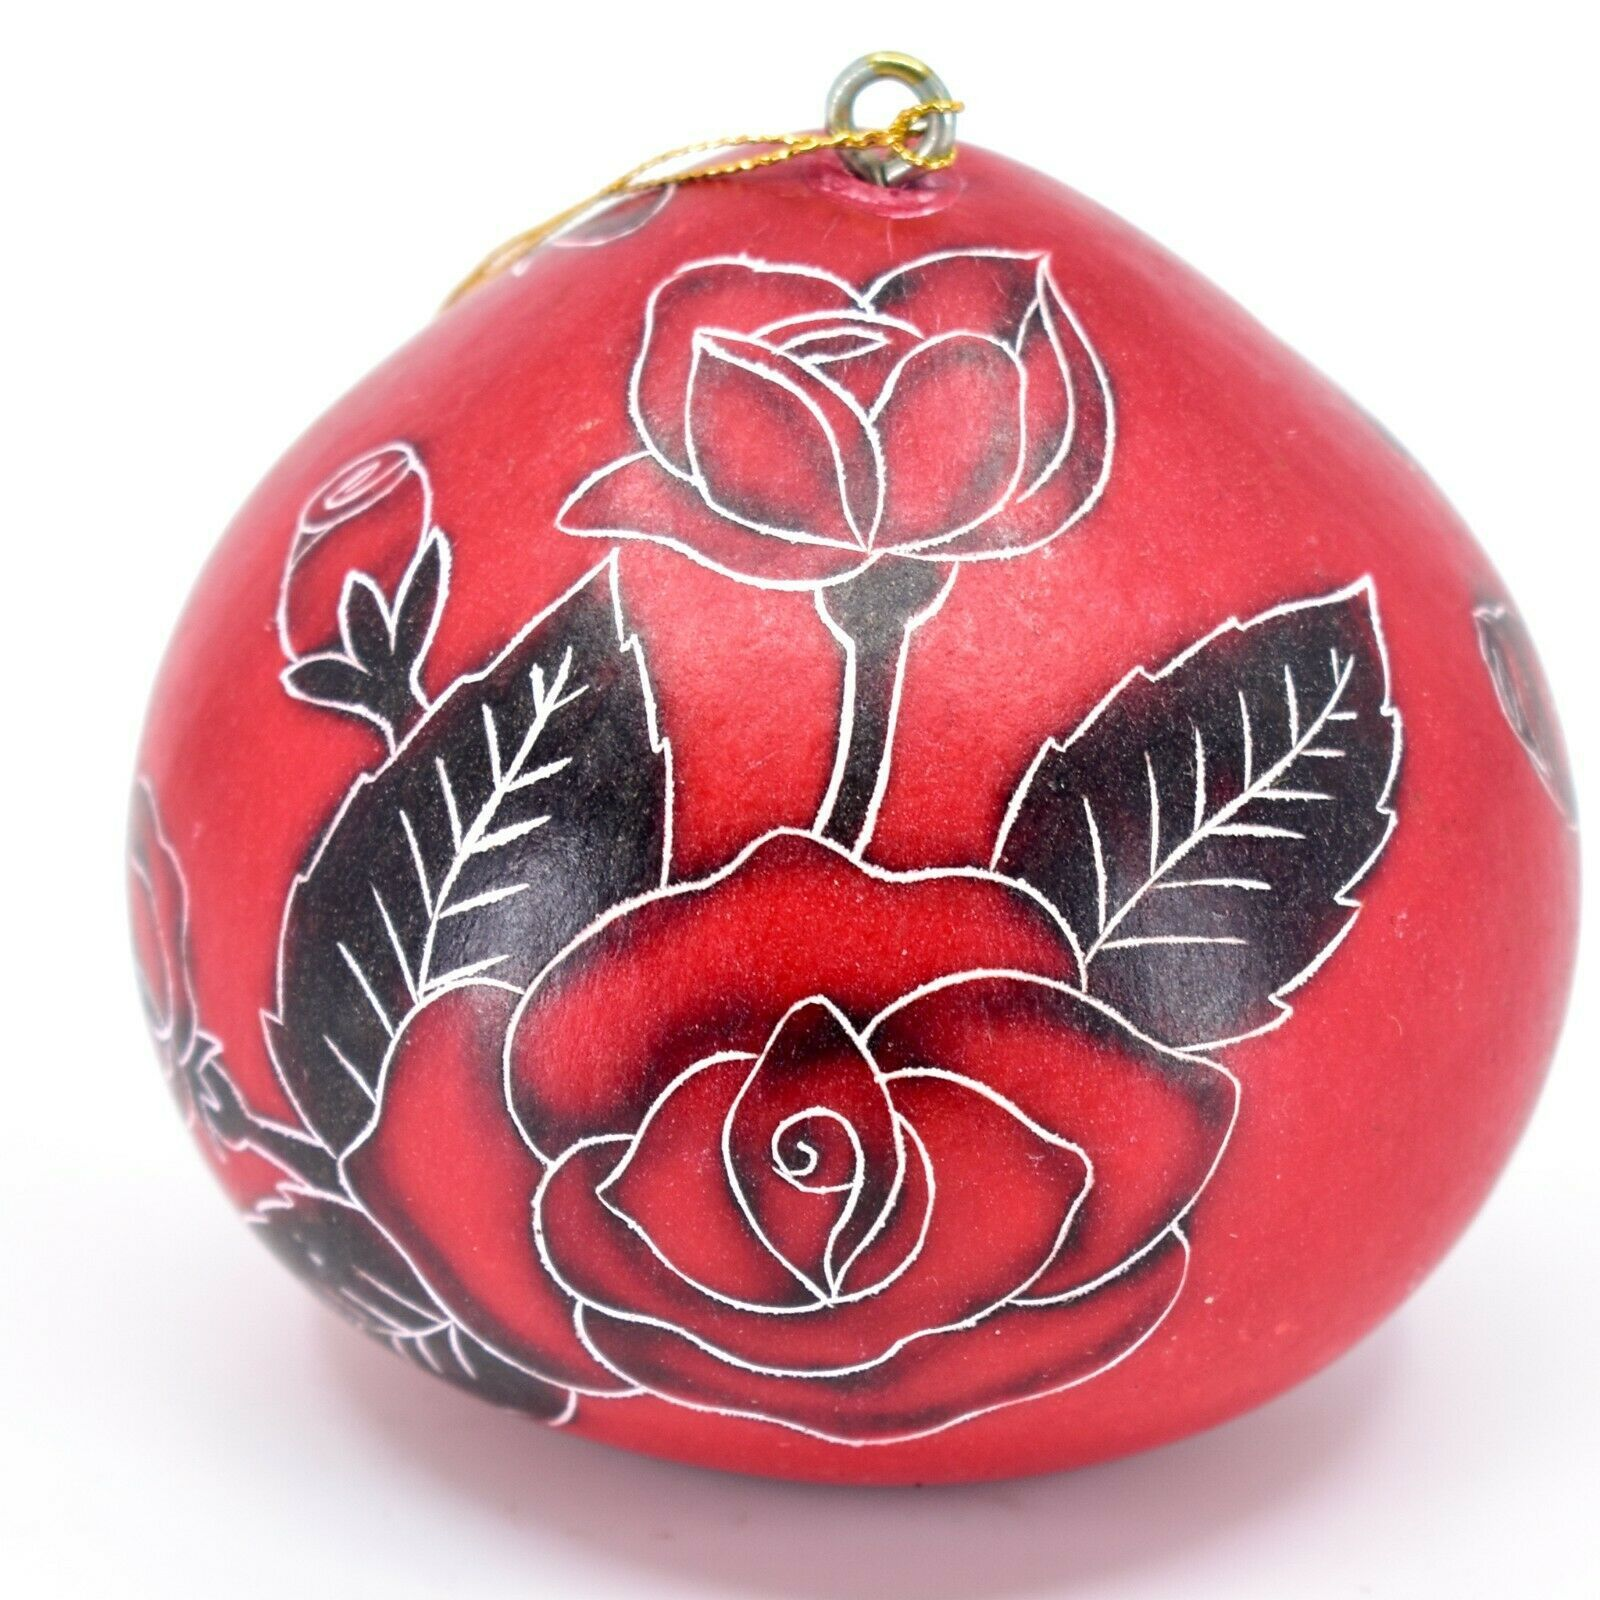 Handcrafted Carved Gourd Art Red Rose Roses Floral Ornament Made in Peru